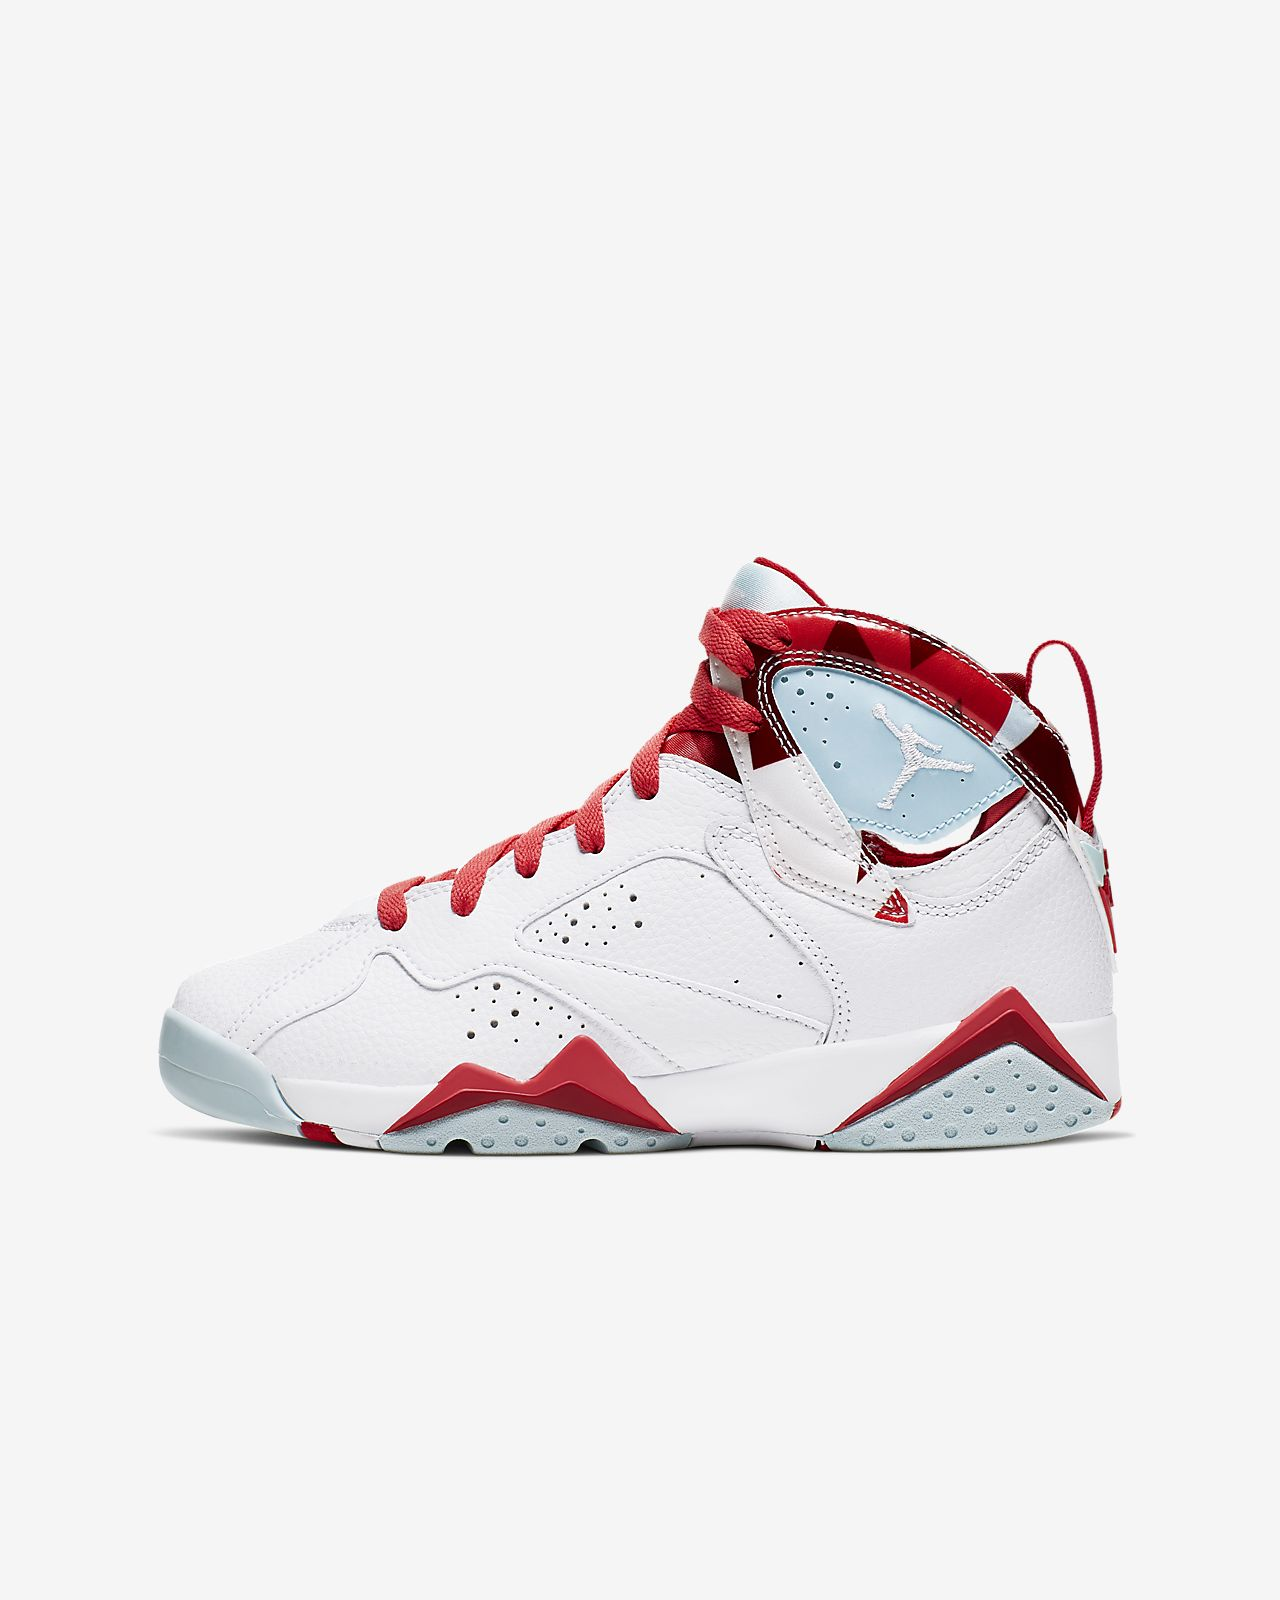 42708dcee2b Air Jordan 7 Retro (3.5y-9.5y) Big Kids' Shoe. Nike.com